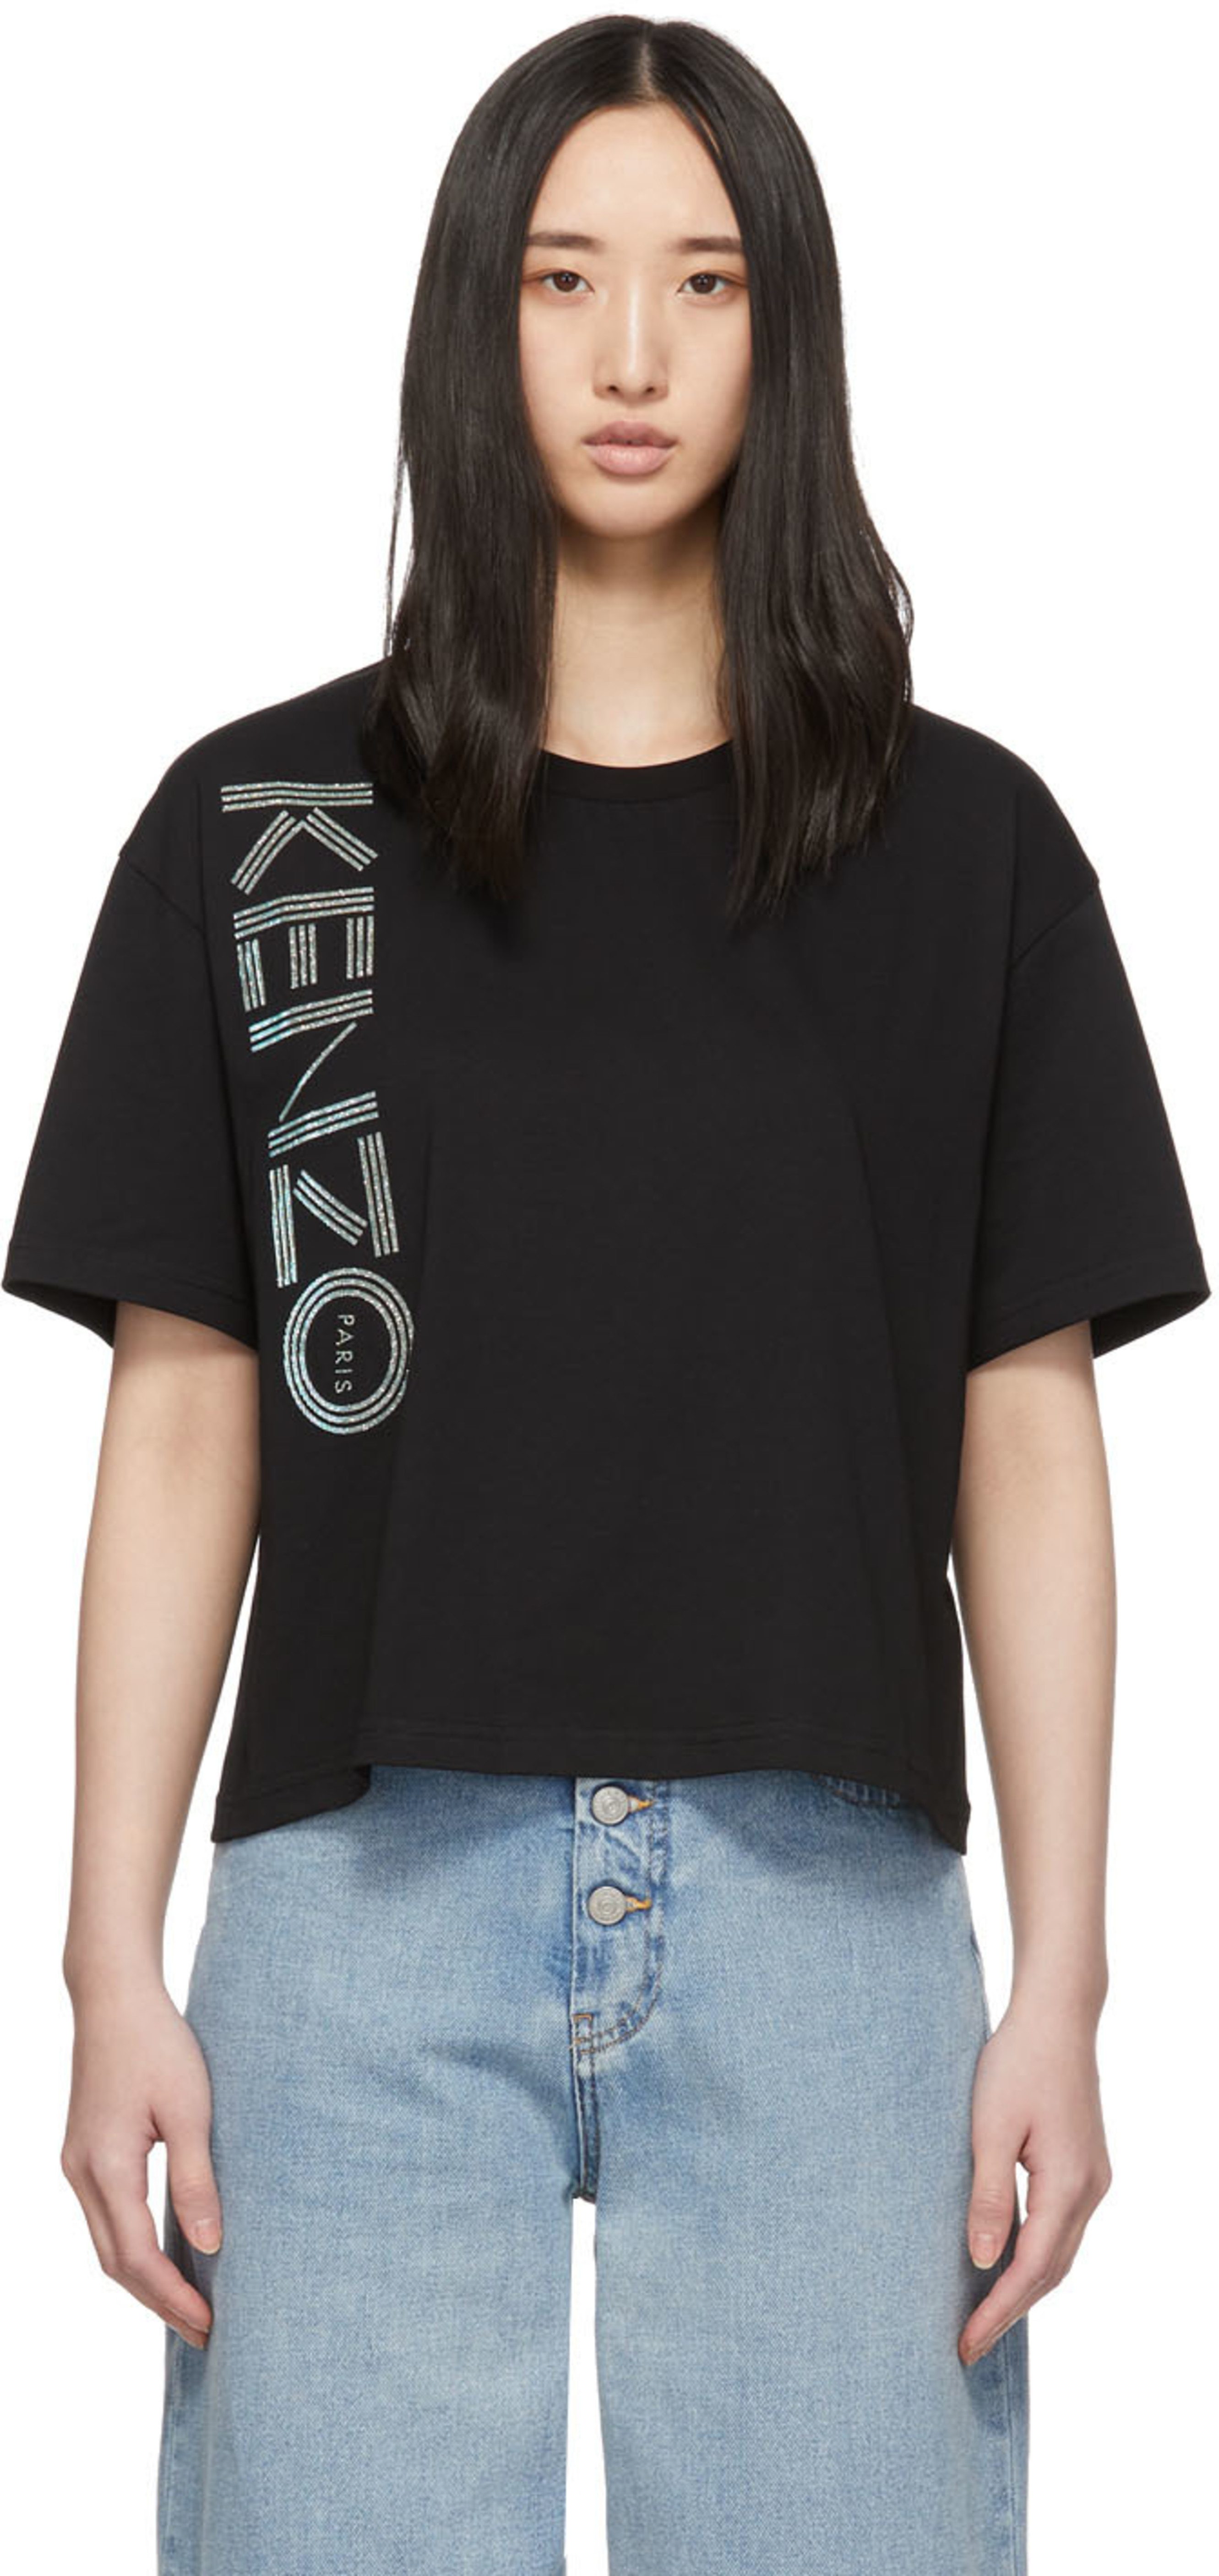 ad06f1ef753a Kenzo for Women FW19 Collection   SSENSE